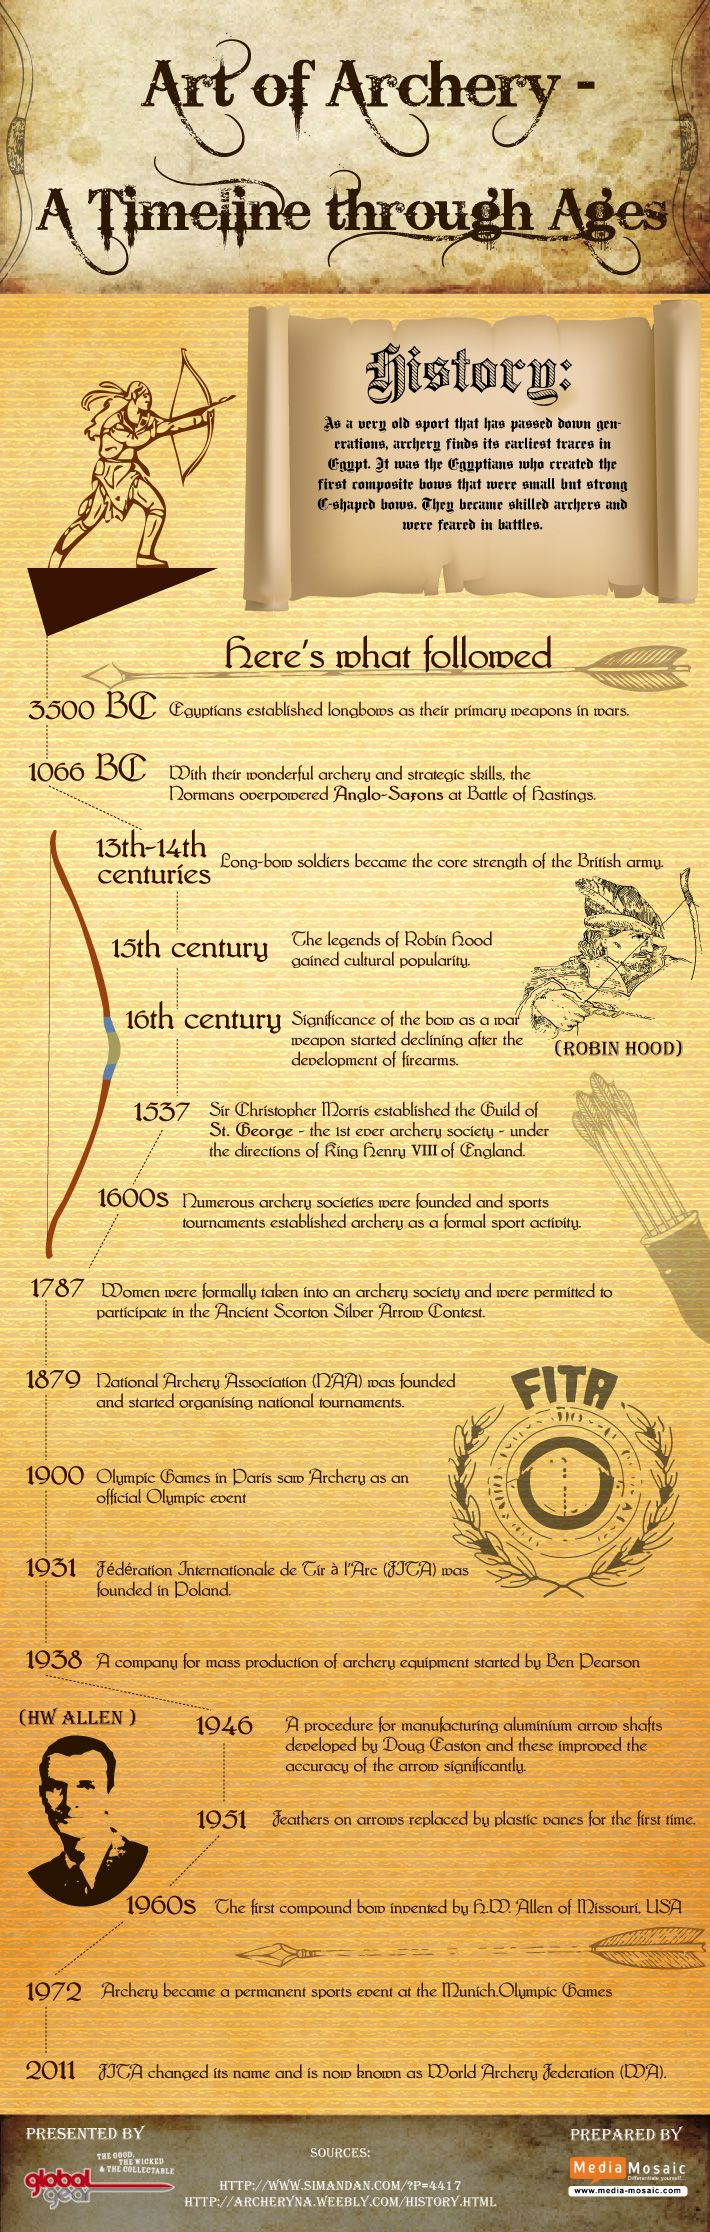 Art of Archery - A Timeline through Ages #infographic #war #history